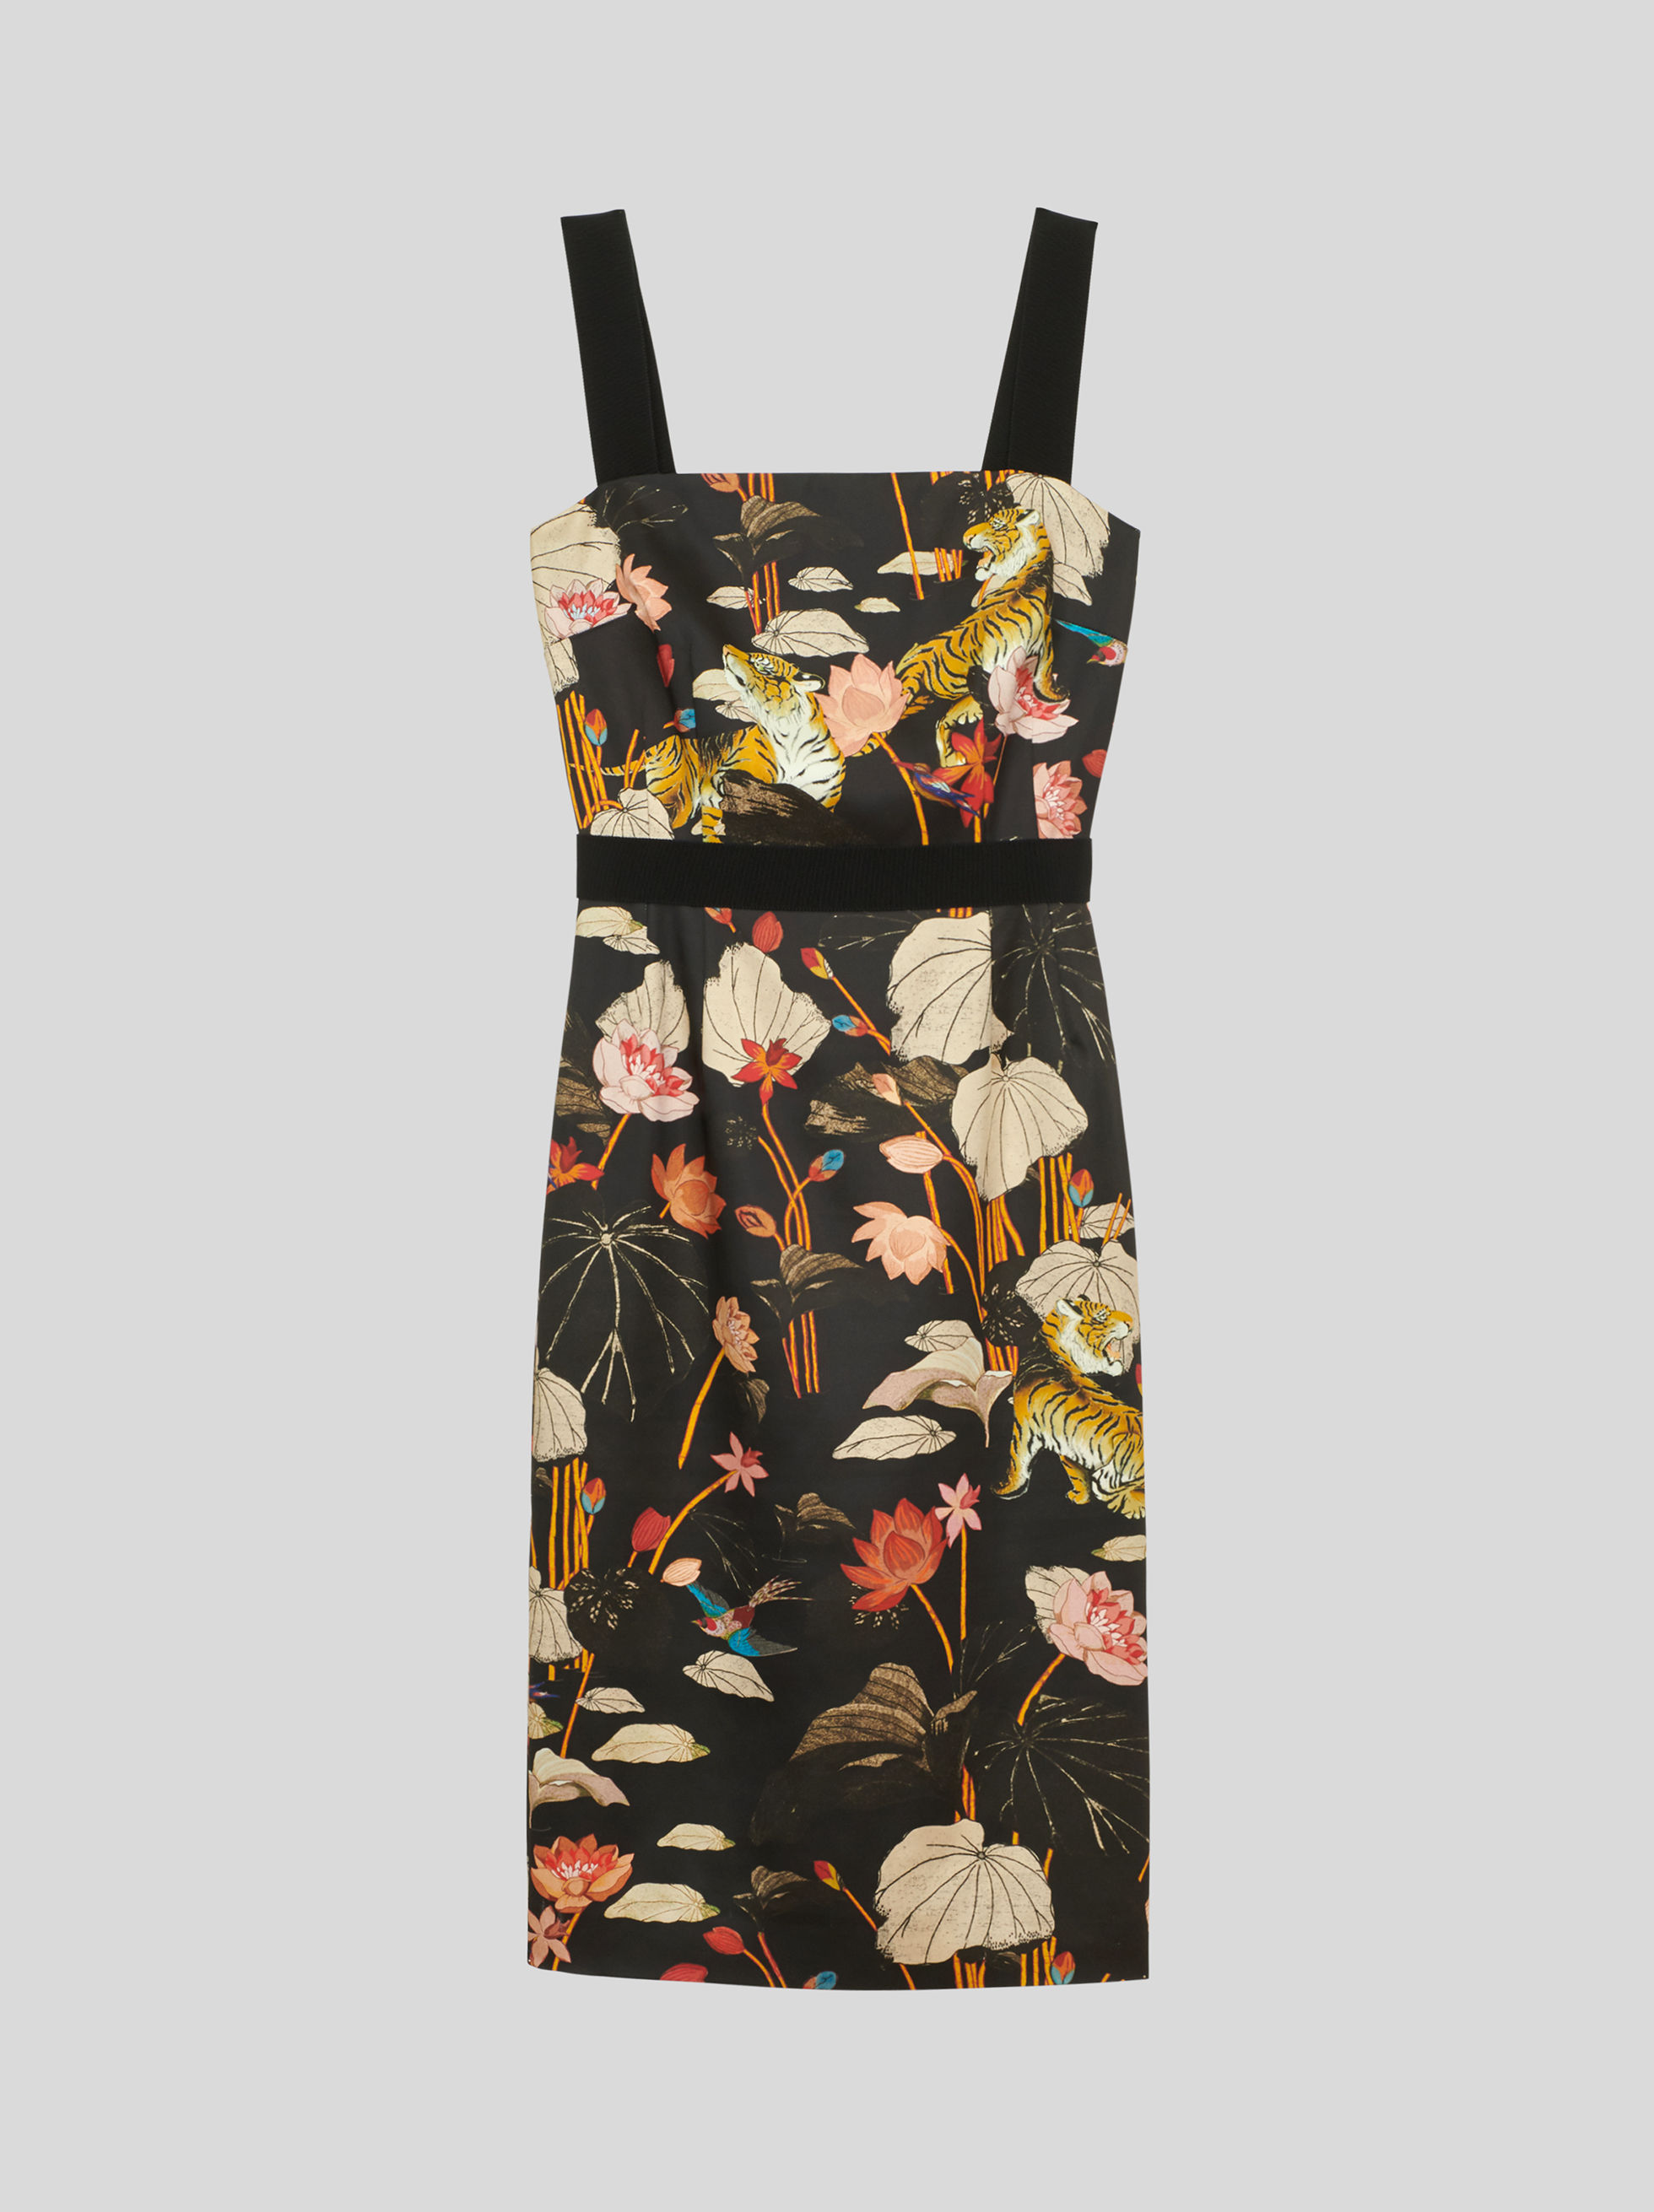 FLORAL AND TIGER PATTERN SHEATH DRESS